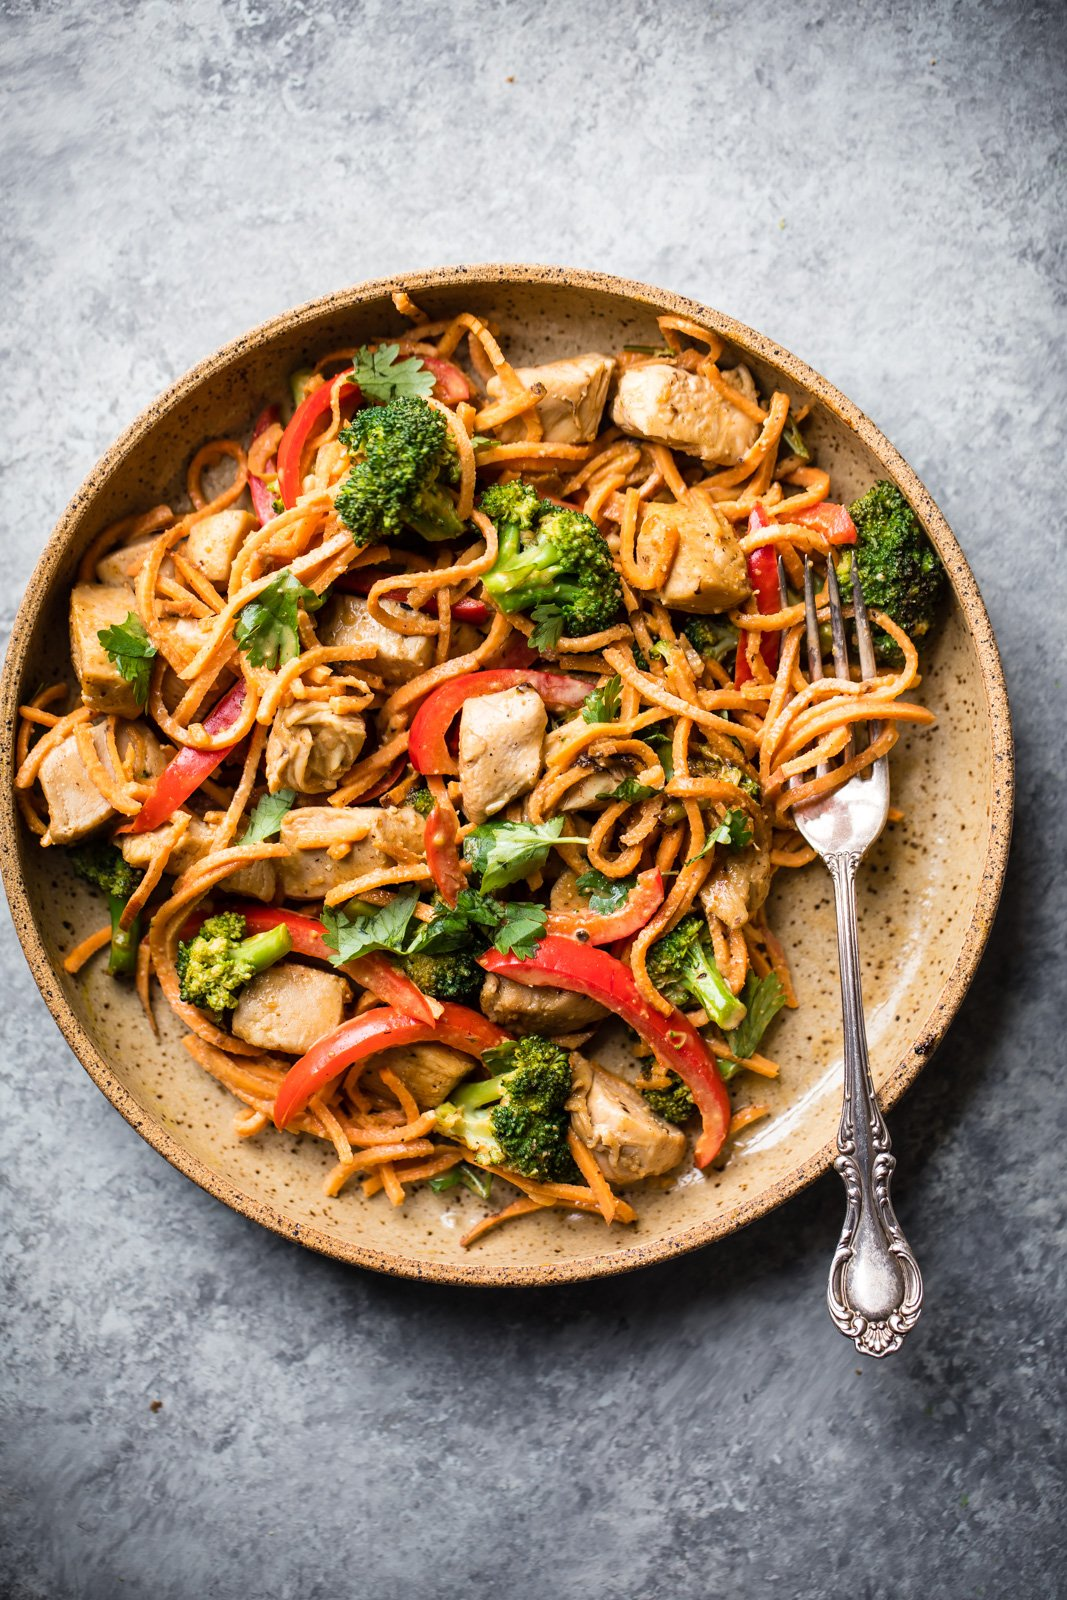 Thai peanut stir-fry with chicken and veggies on a plate